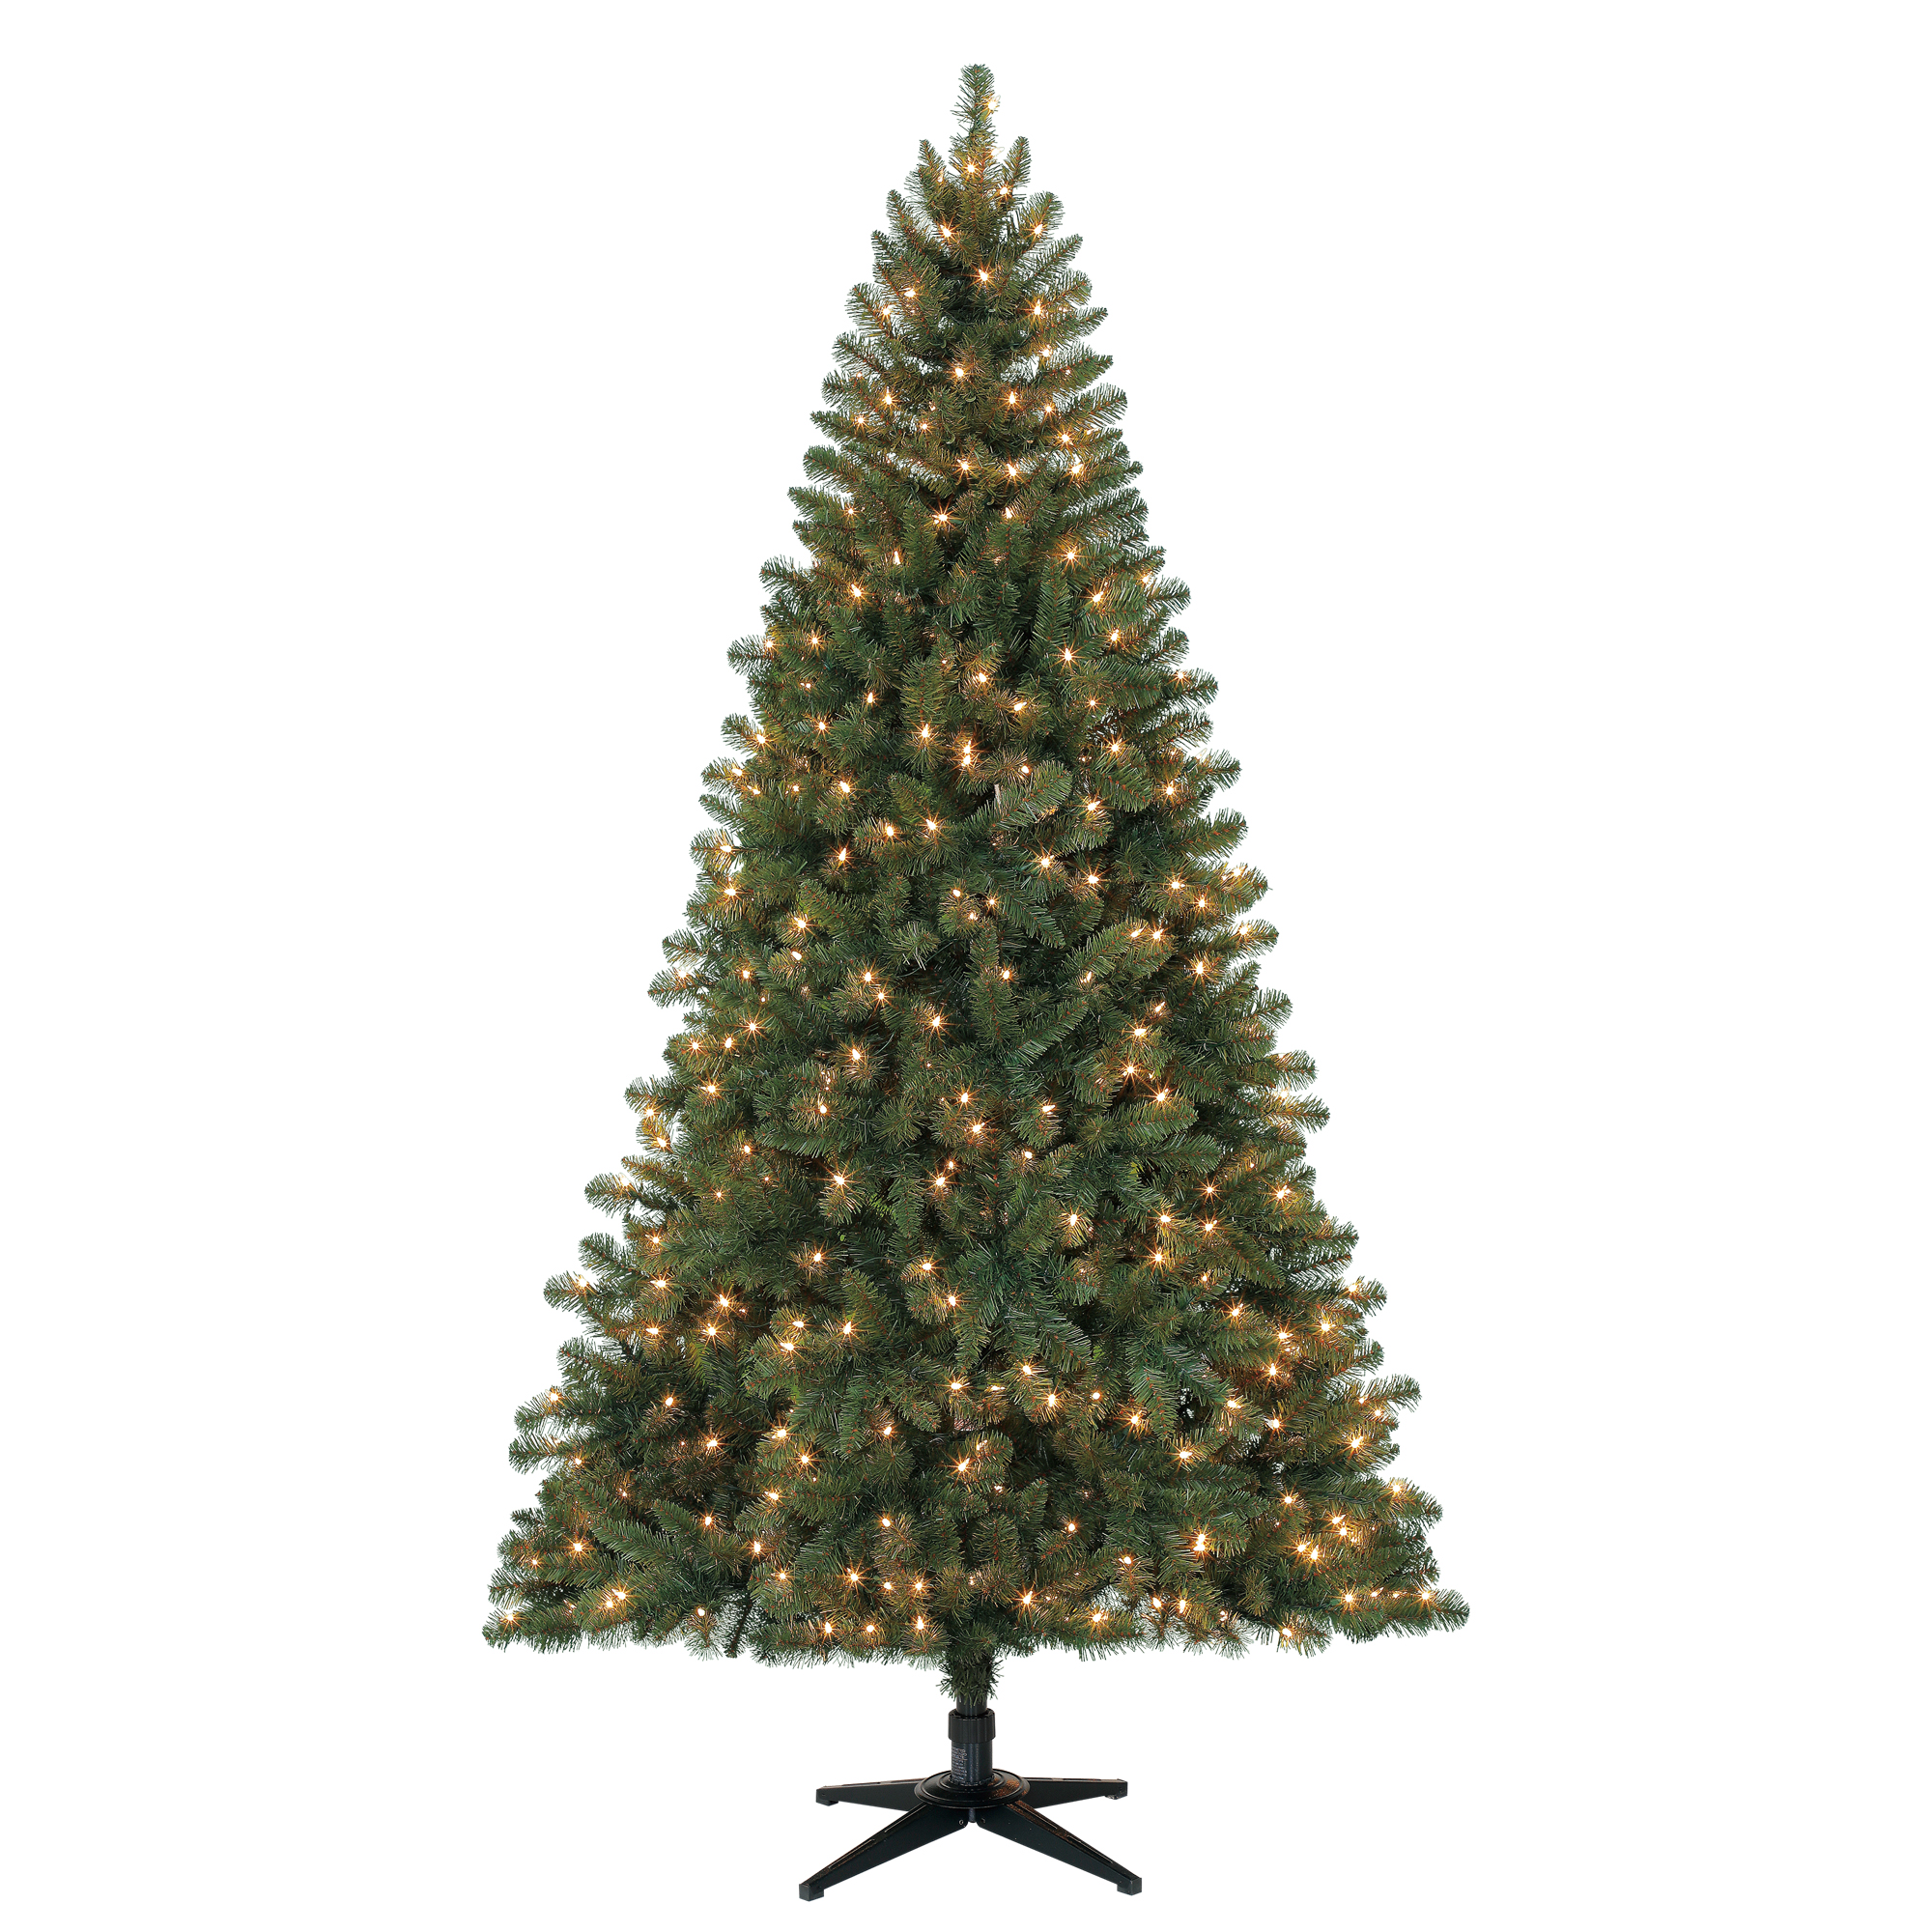 Holiday Time 7ft Pre-Lit Duncan Fir Artificial Christmas Tree with 450 Clear Lights - Green